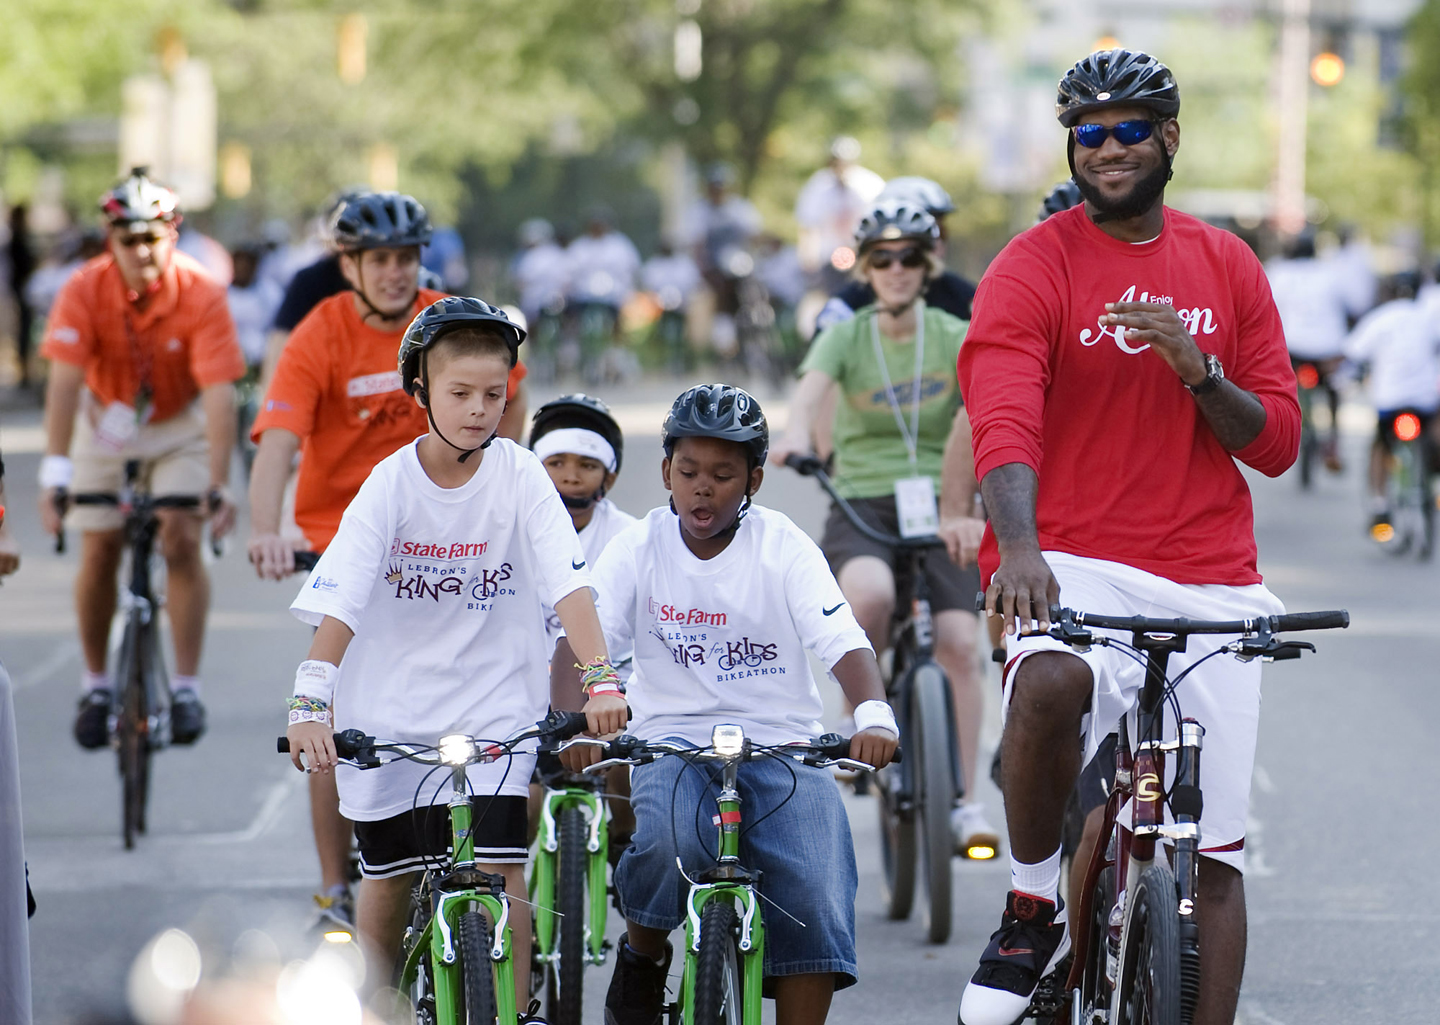 LeBron James, right, finishes his ride during the LeBron James Family Foundation, King for Kids Bike-a-thon, in Akron, Ohio, Saturday, Aug. 7, 2010.